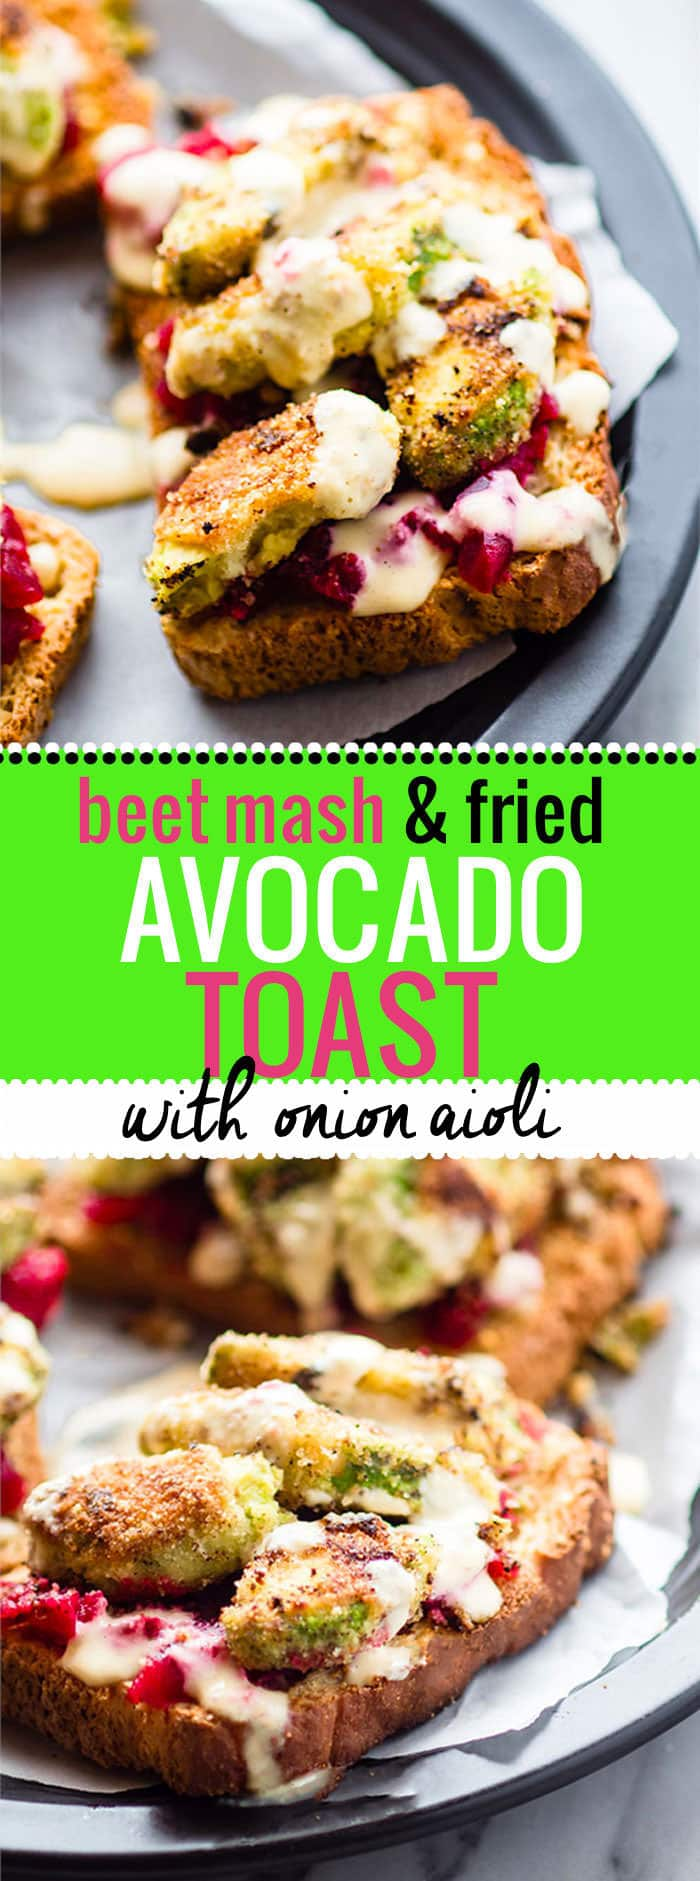 Healthy AVOCADO TOAST that's crave worthy! Smashed beet and gluten free fried avocado toast with onion aioli. Crispy buttery Breakfast in 20 minutes. Crispy, buttery, flavor packed! @cottercrunch